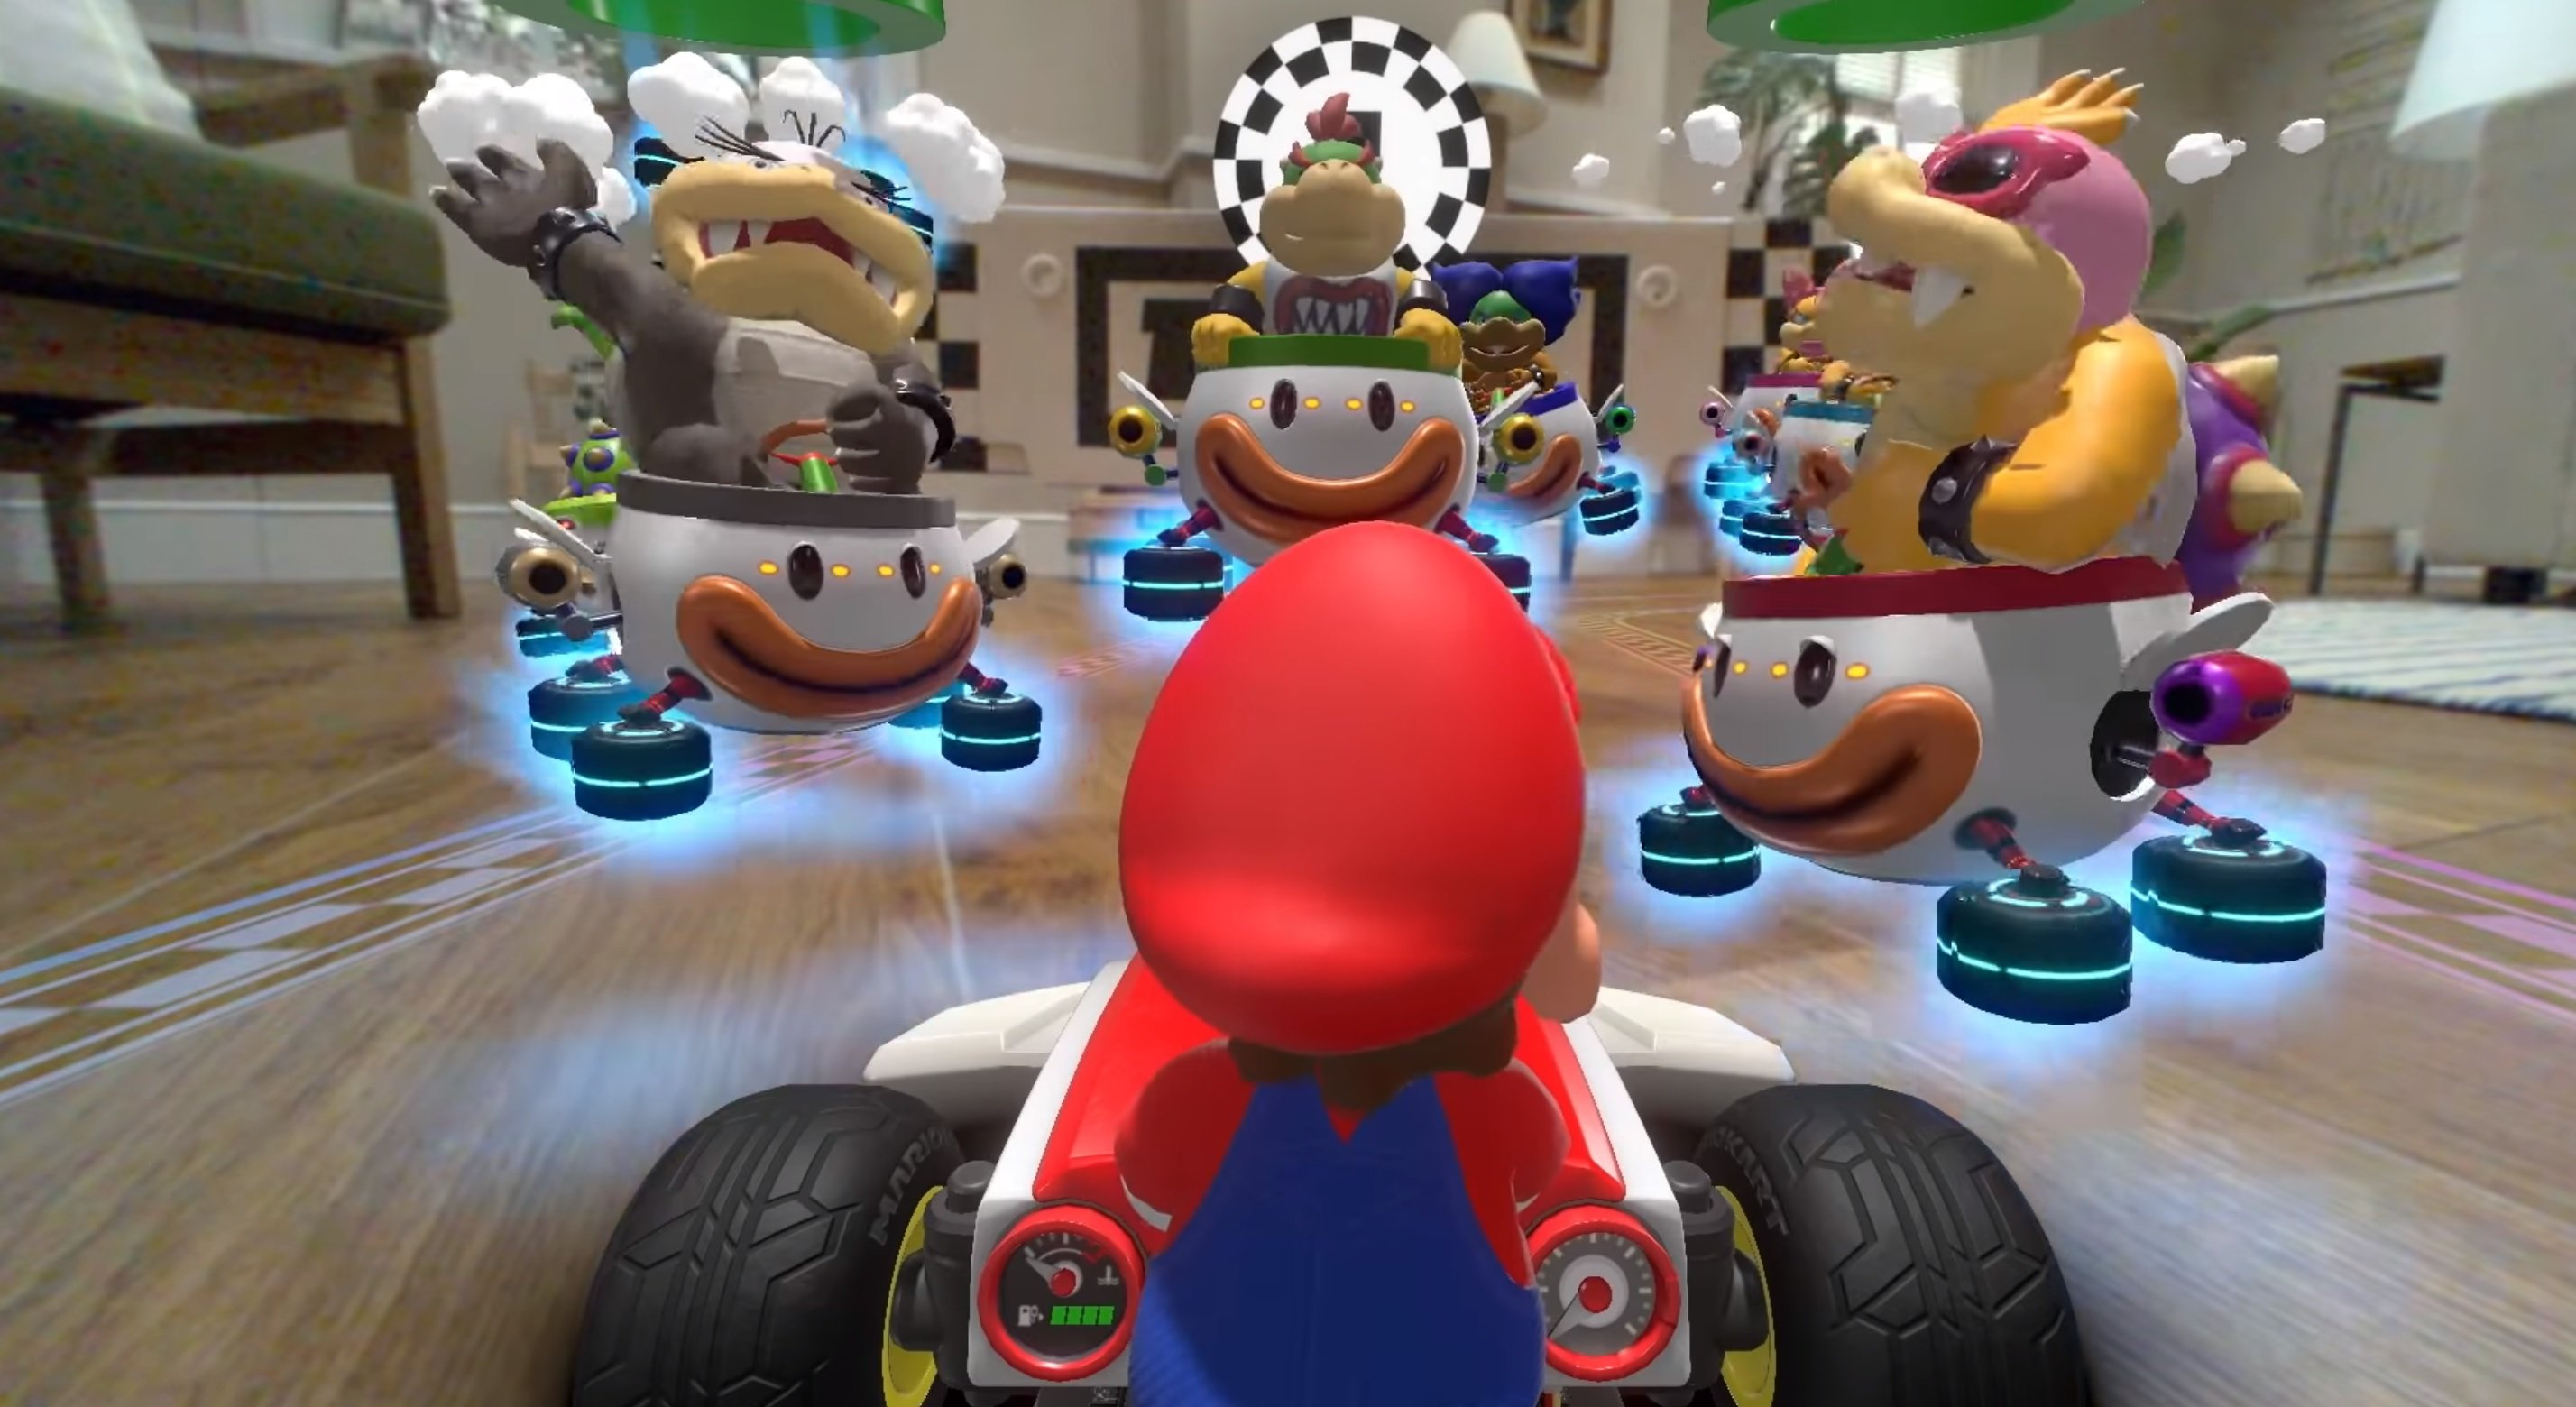 Nintendo unveils new details for Mario Kart Live, like its 24-race Grand Prix mode screenshot